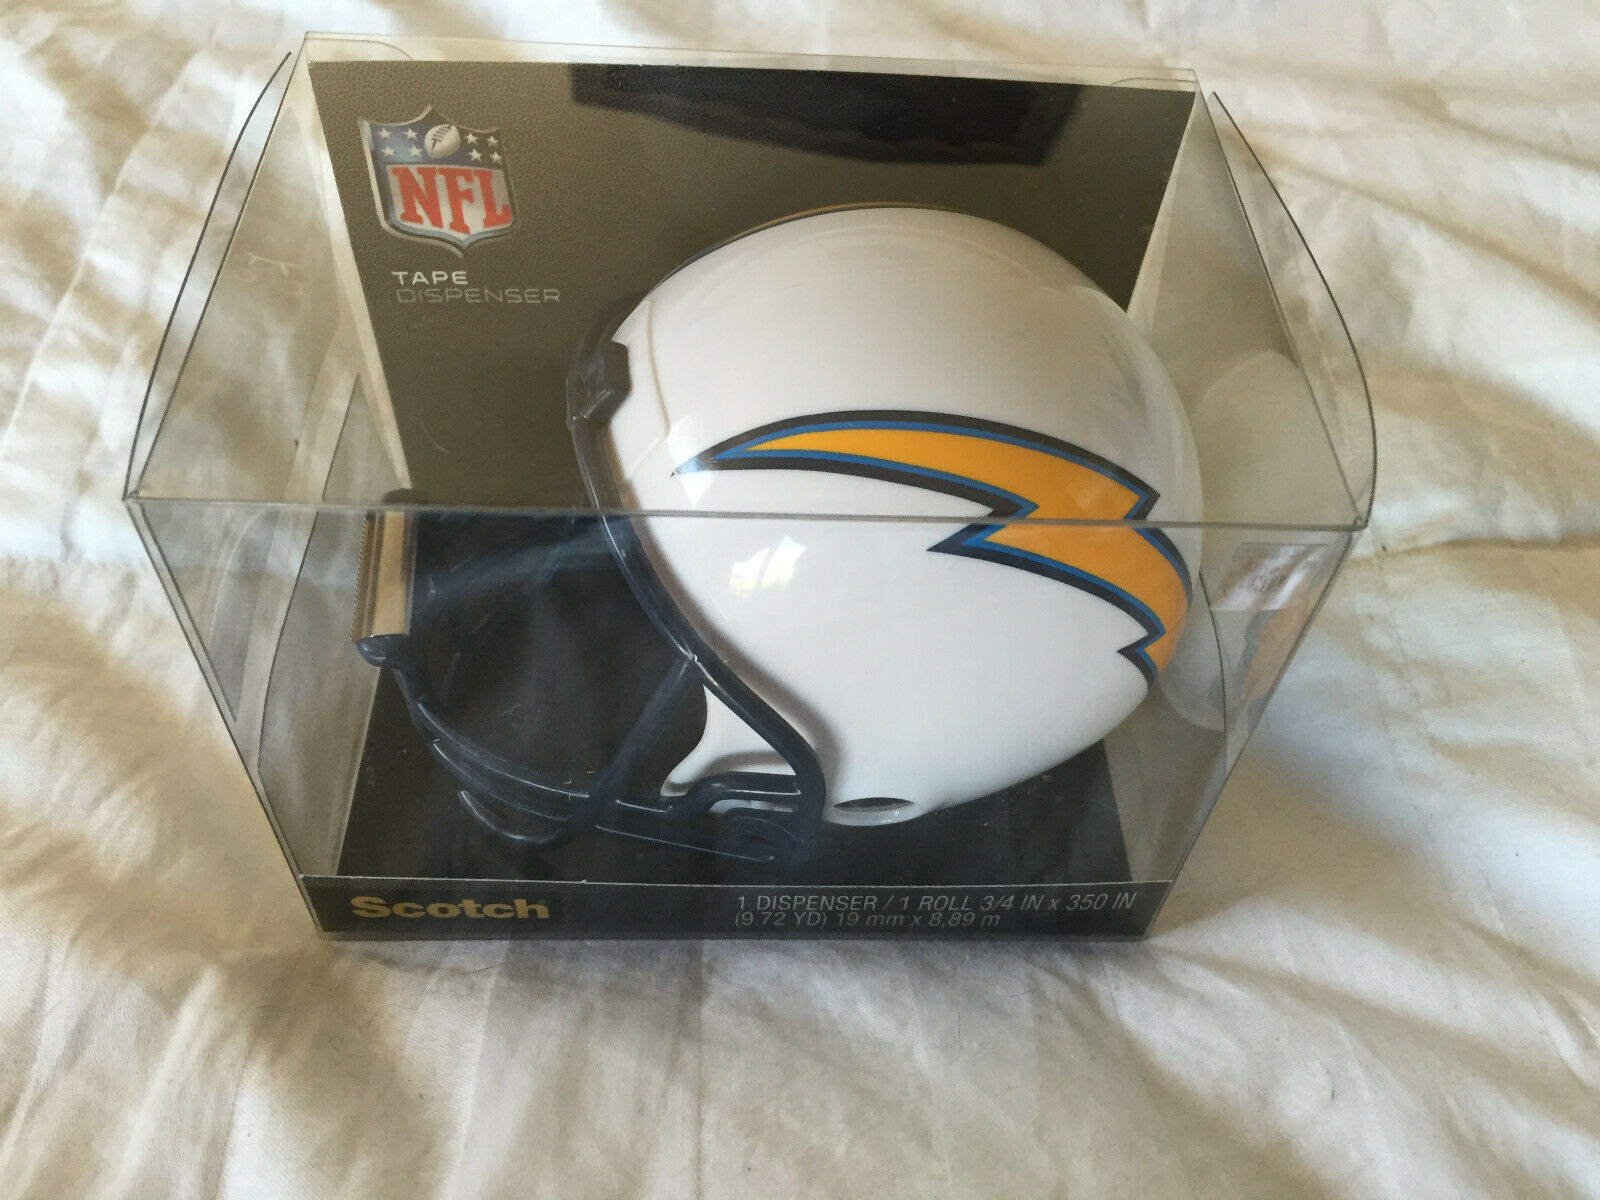 Washington Redskins Football Helmet with 1 Roll of 3//4 x 350 Inches Tape Scotch Magic Tape Dispenser